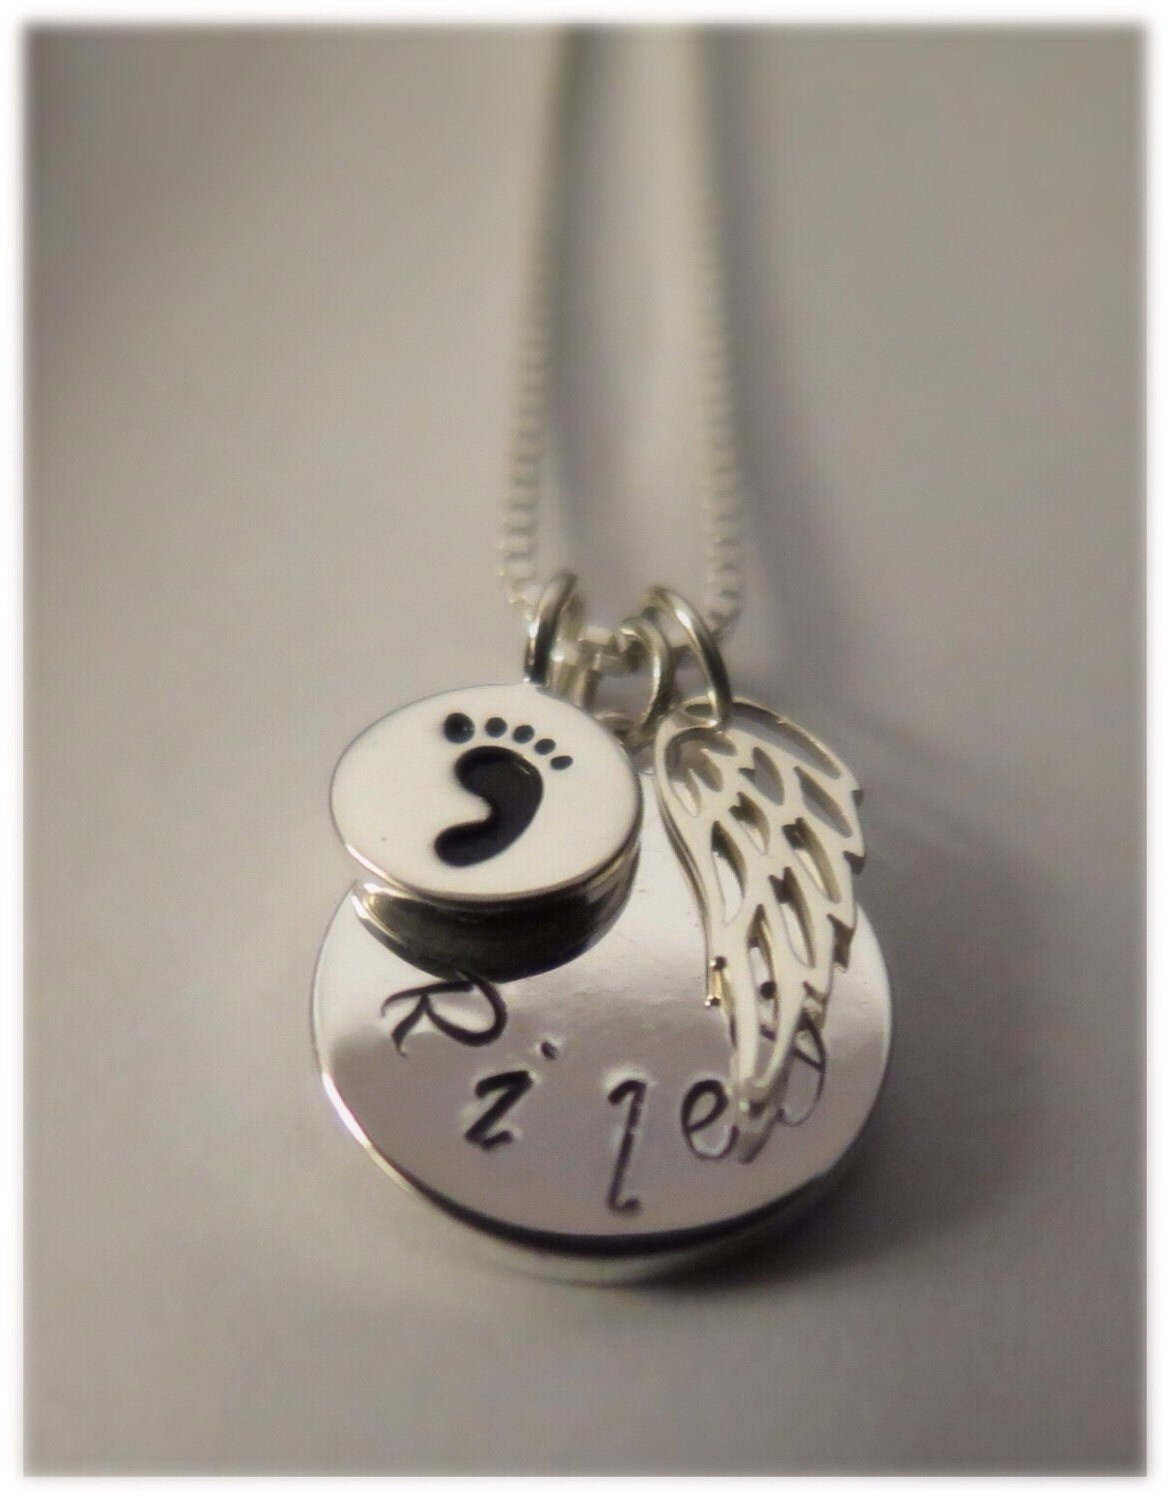 Miscarriage jewelry personalized miscarry necklace for Kay com personalized jewelry